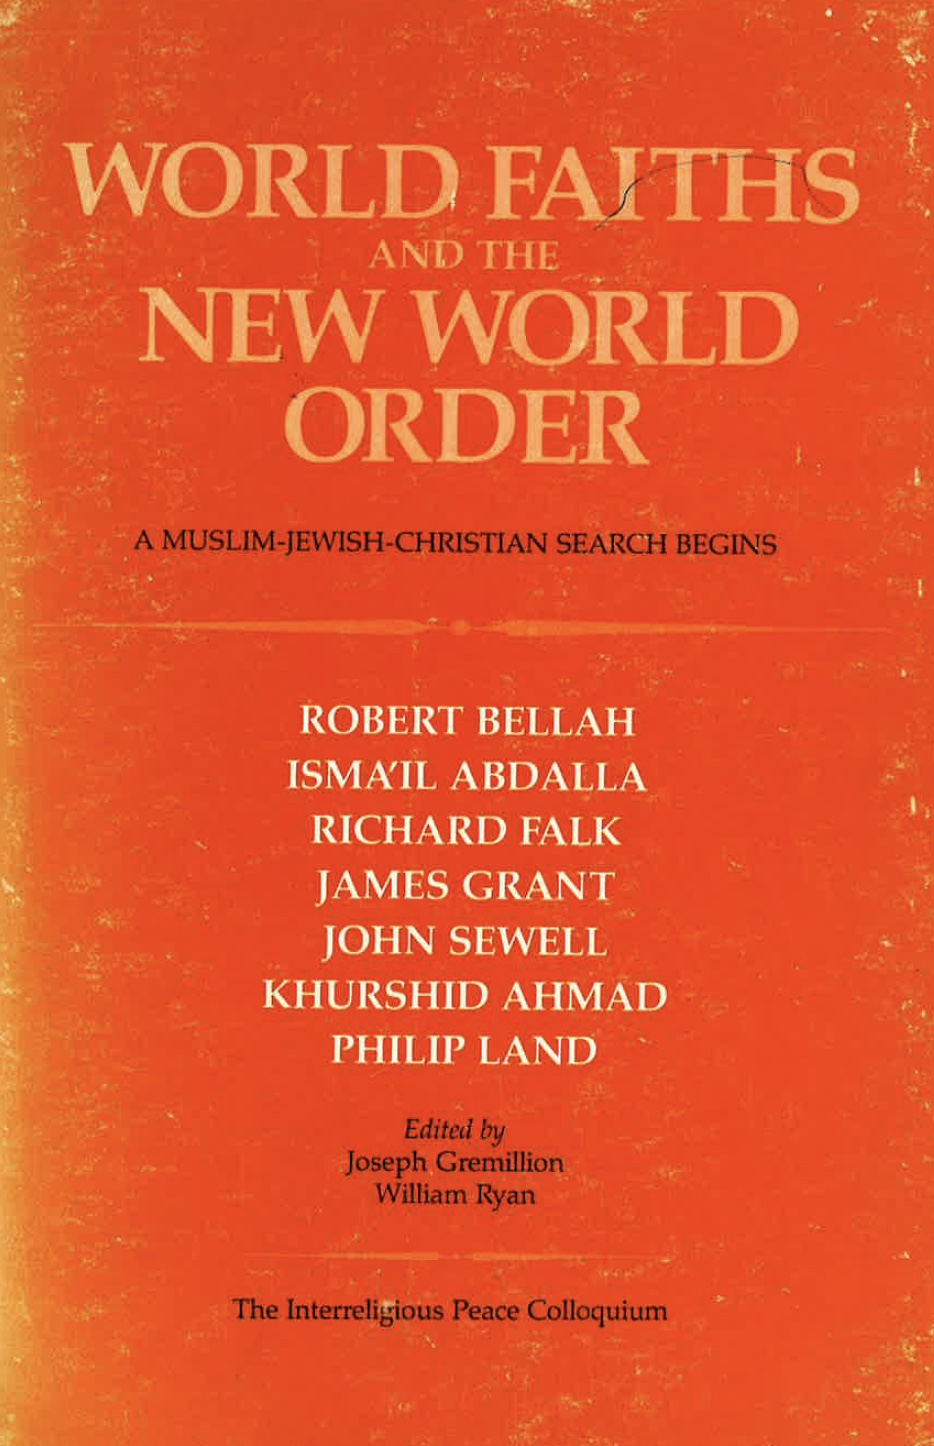 World Faiths and the New World Order Image